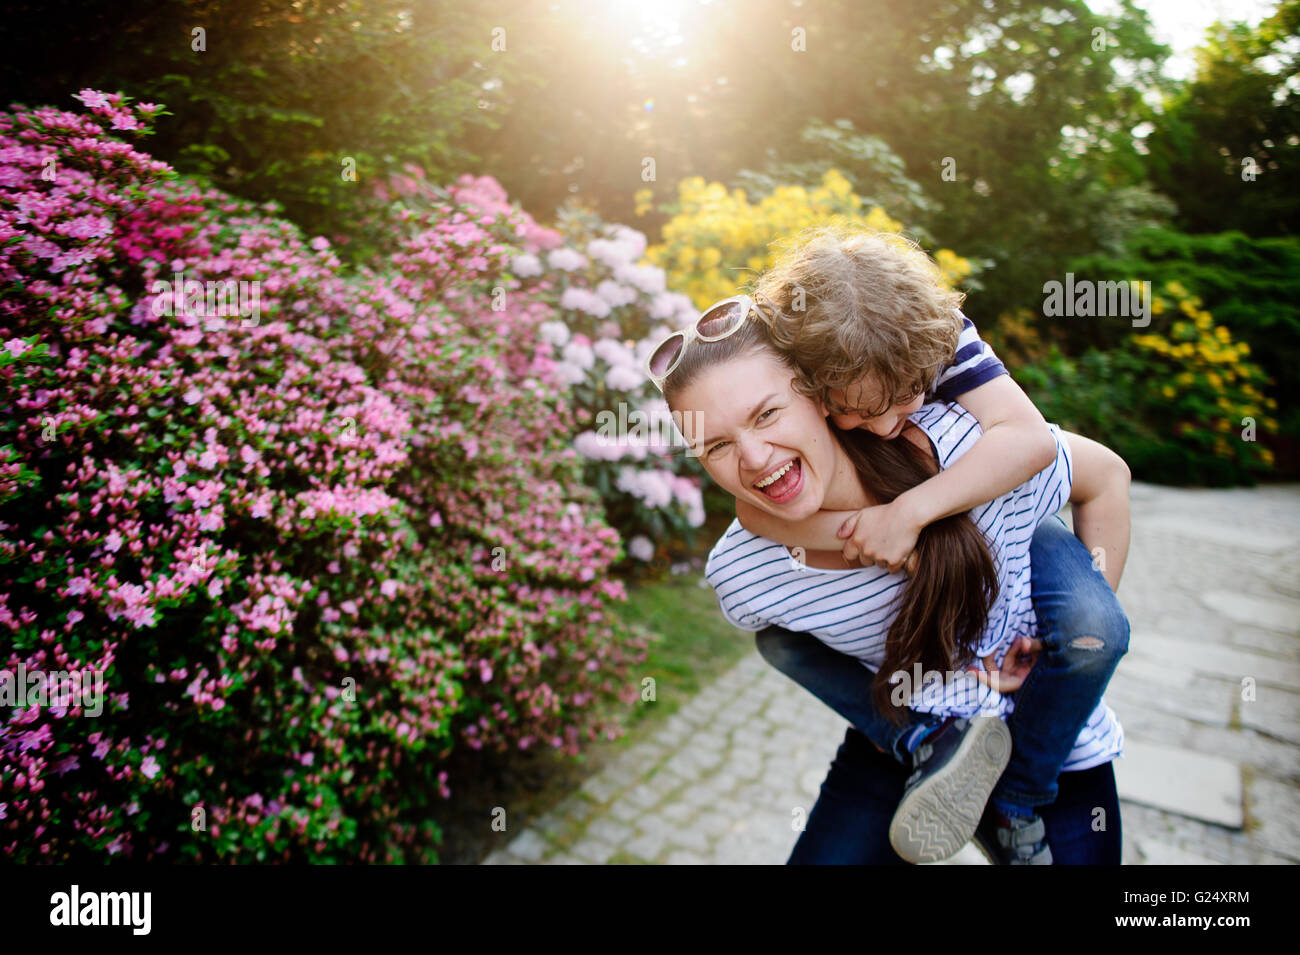 Mother and son on the nature. - Stock Image